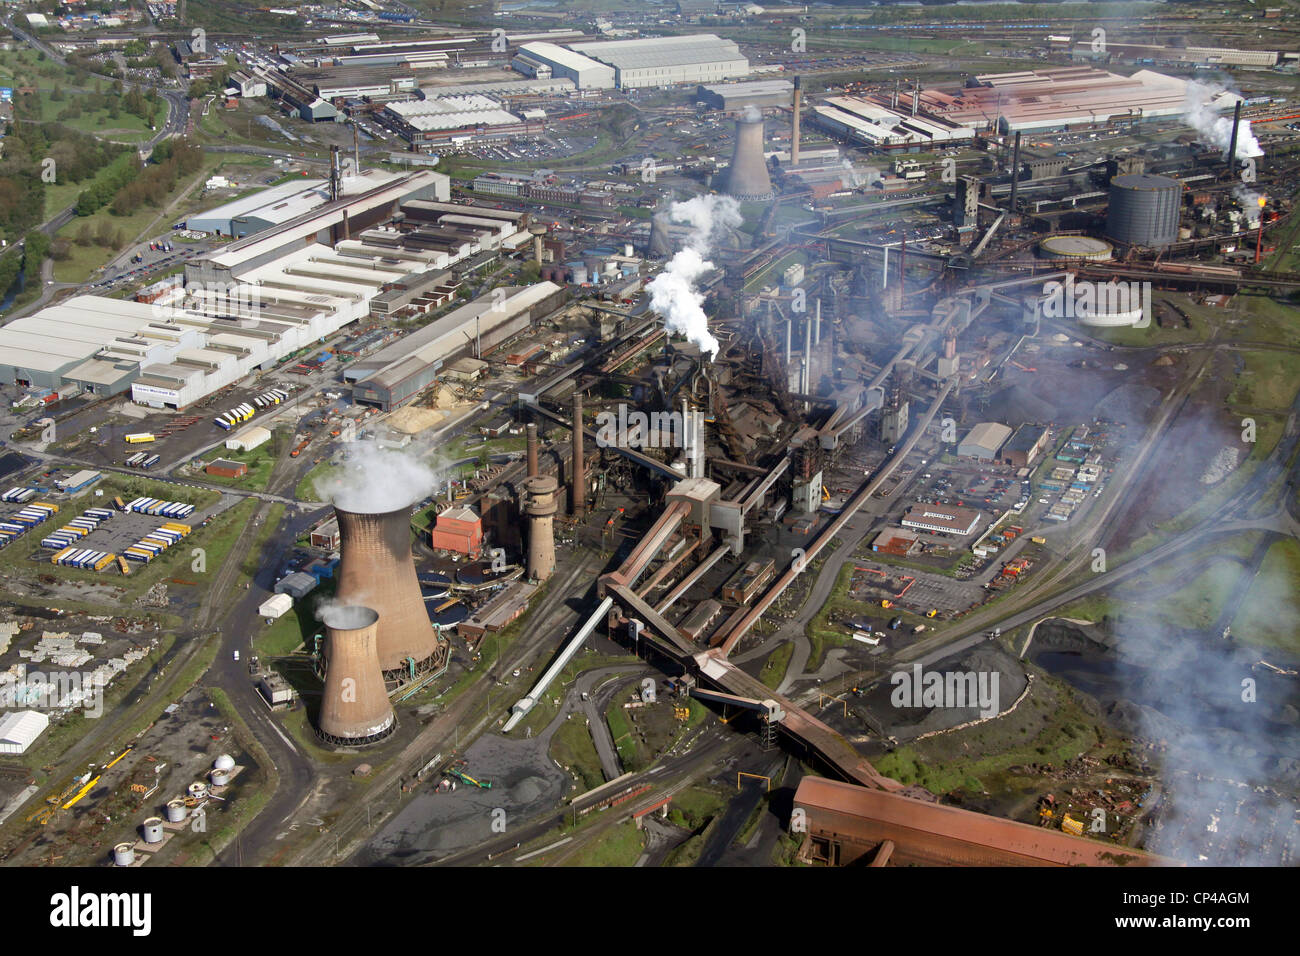 Aerial view of the British Steel Tata steelworks at Scunthorpe Stock Photo